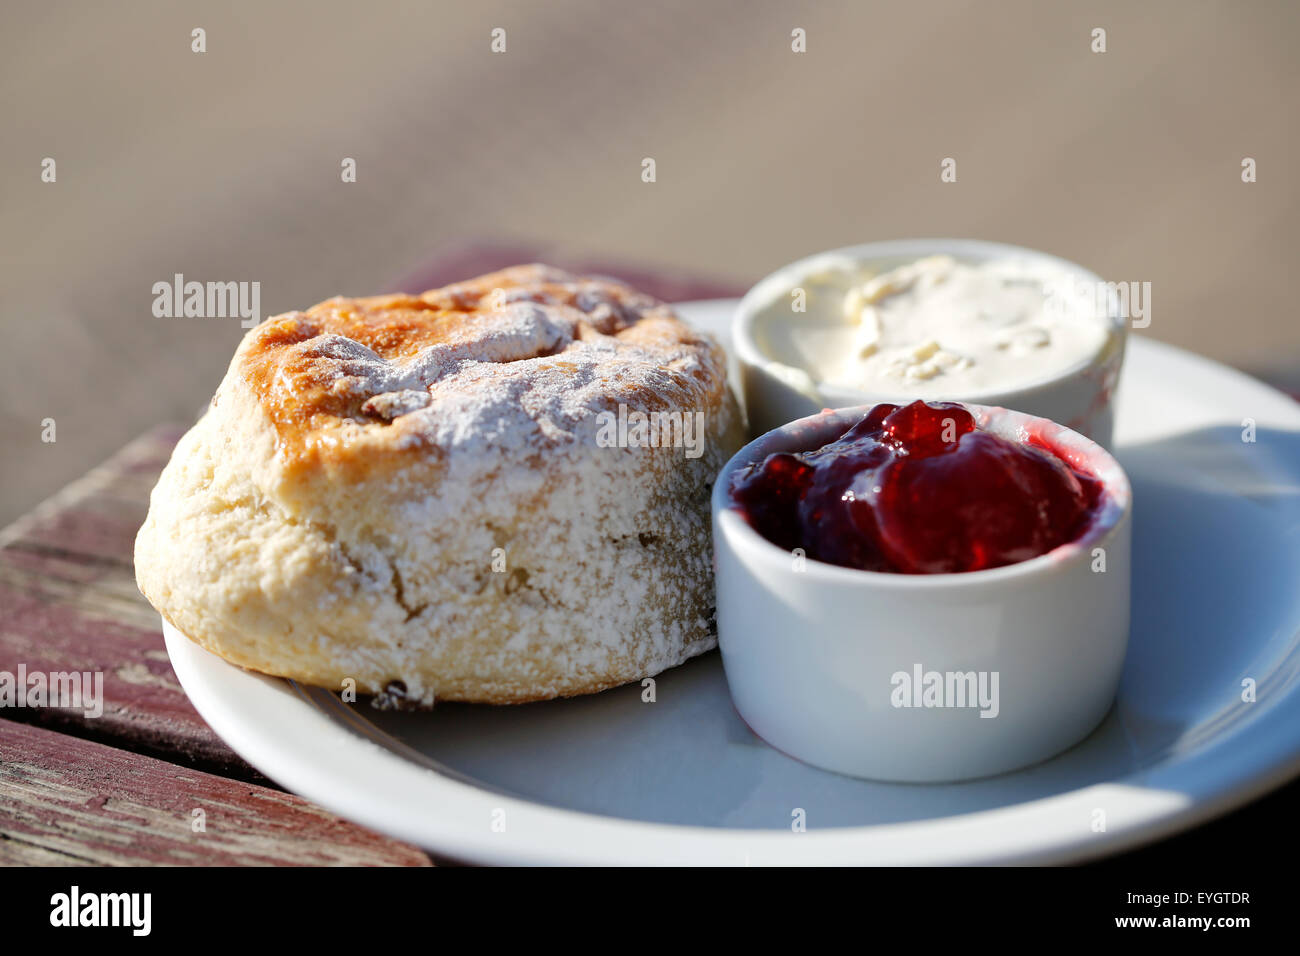 a-freshly-prepared-scone-with-jam-and-cr